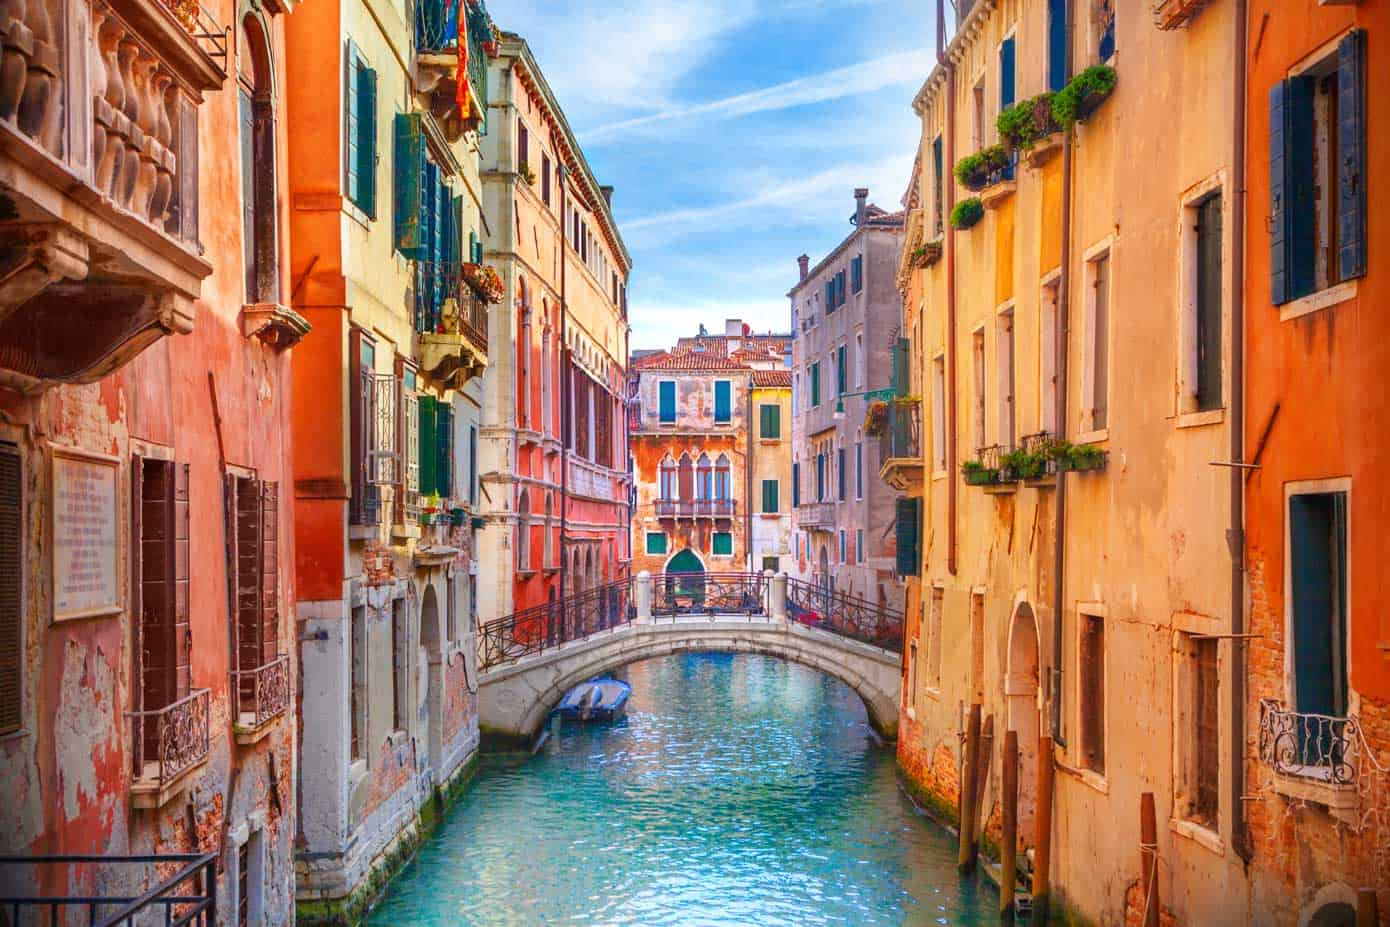 Colorful, romantic canals in Venice, Italy.